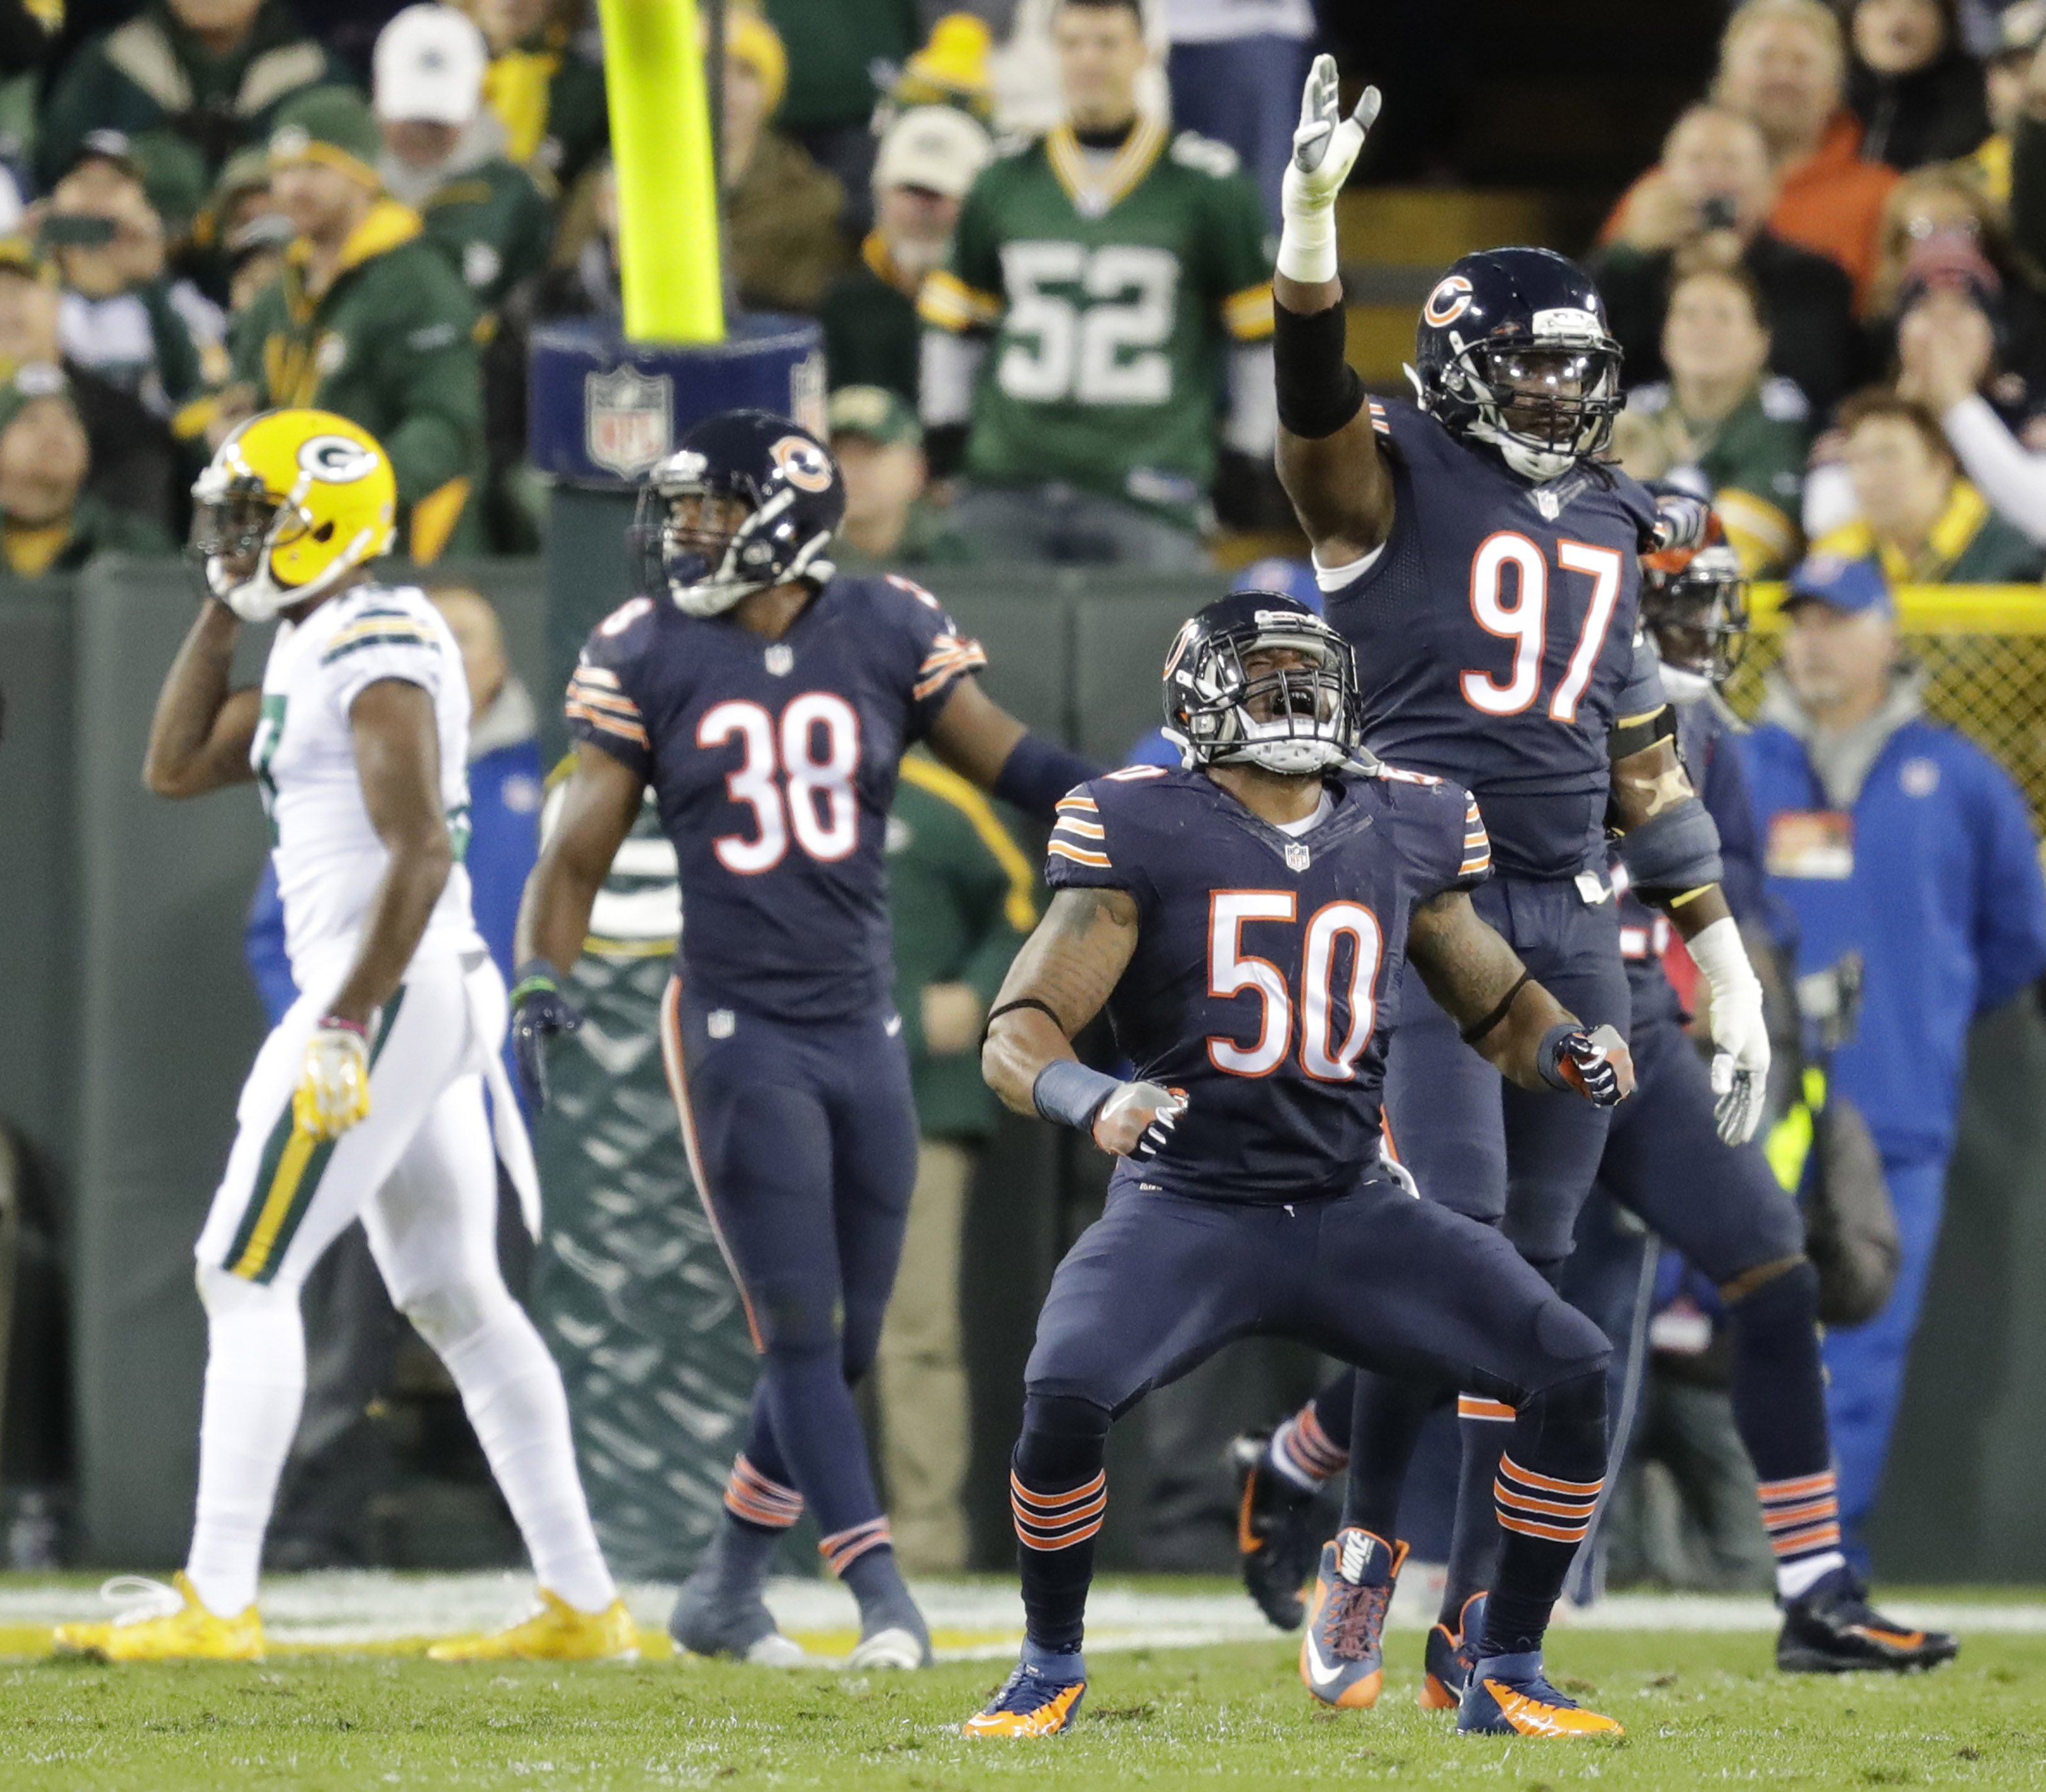 9621776-nfl-chicago-bears-at-green-bay-packers